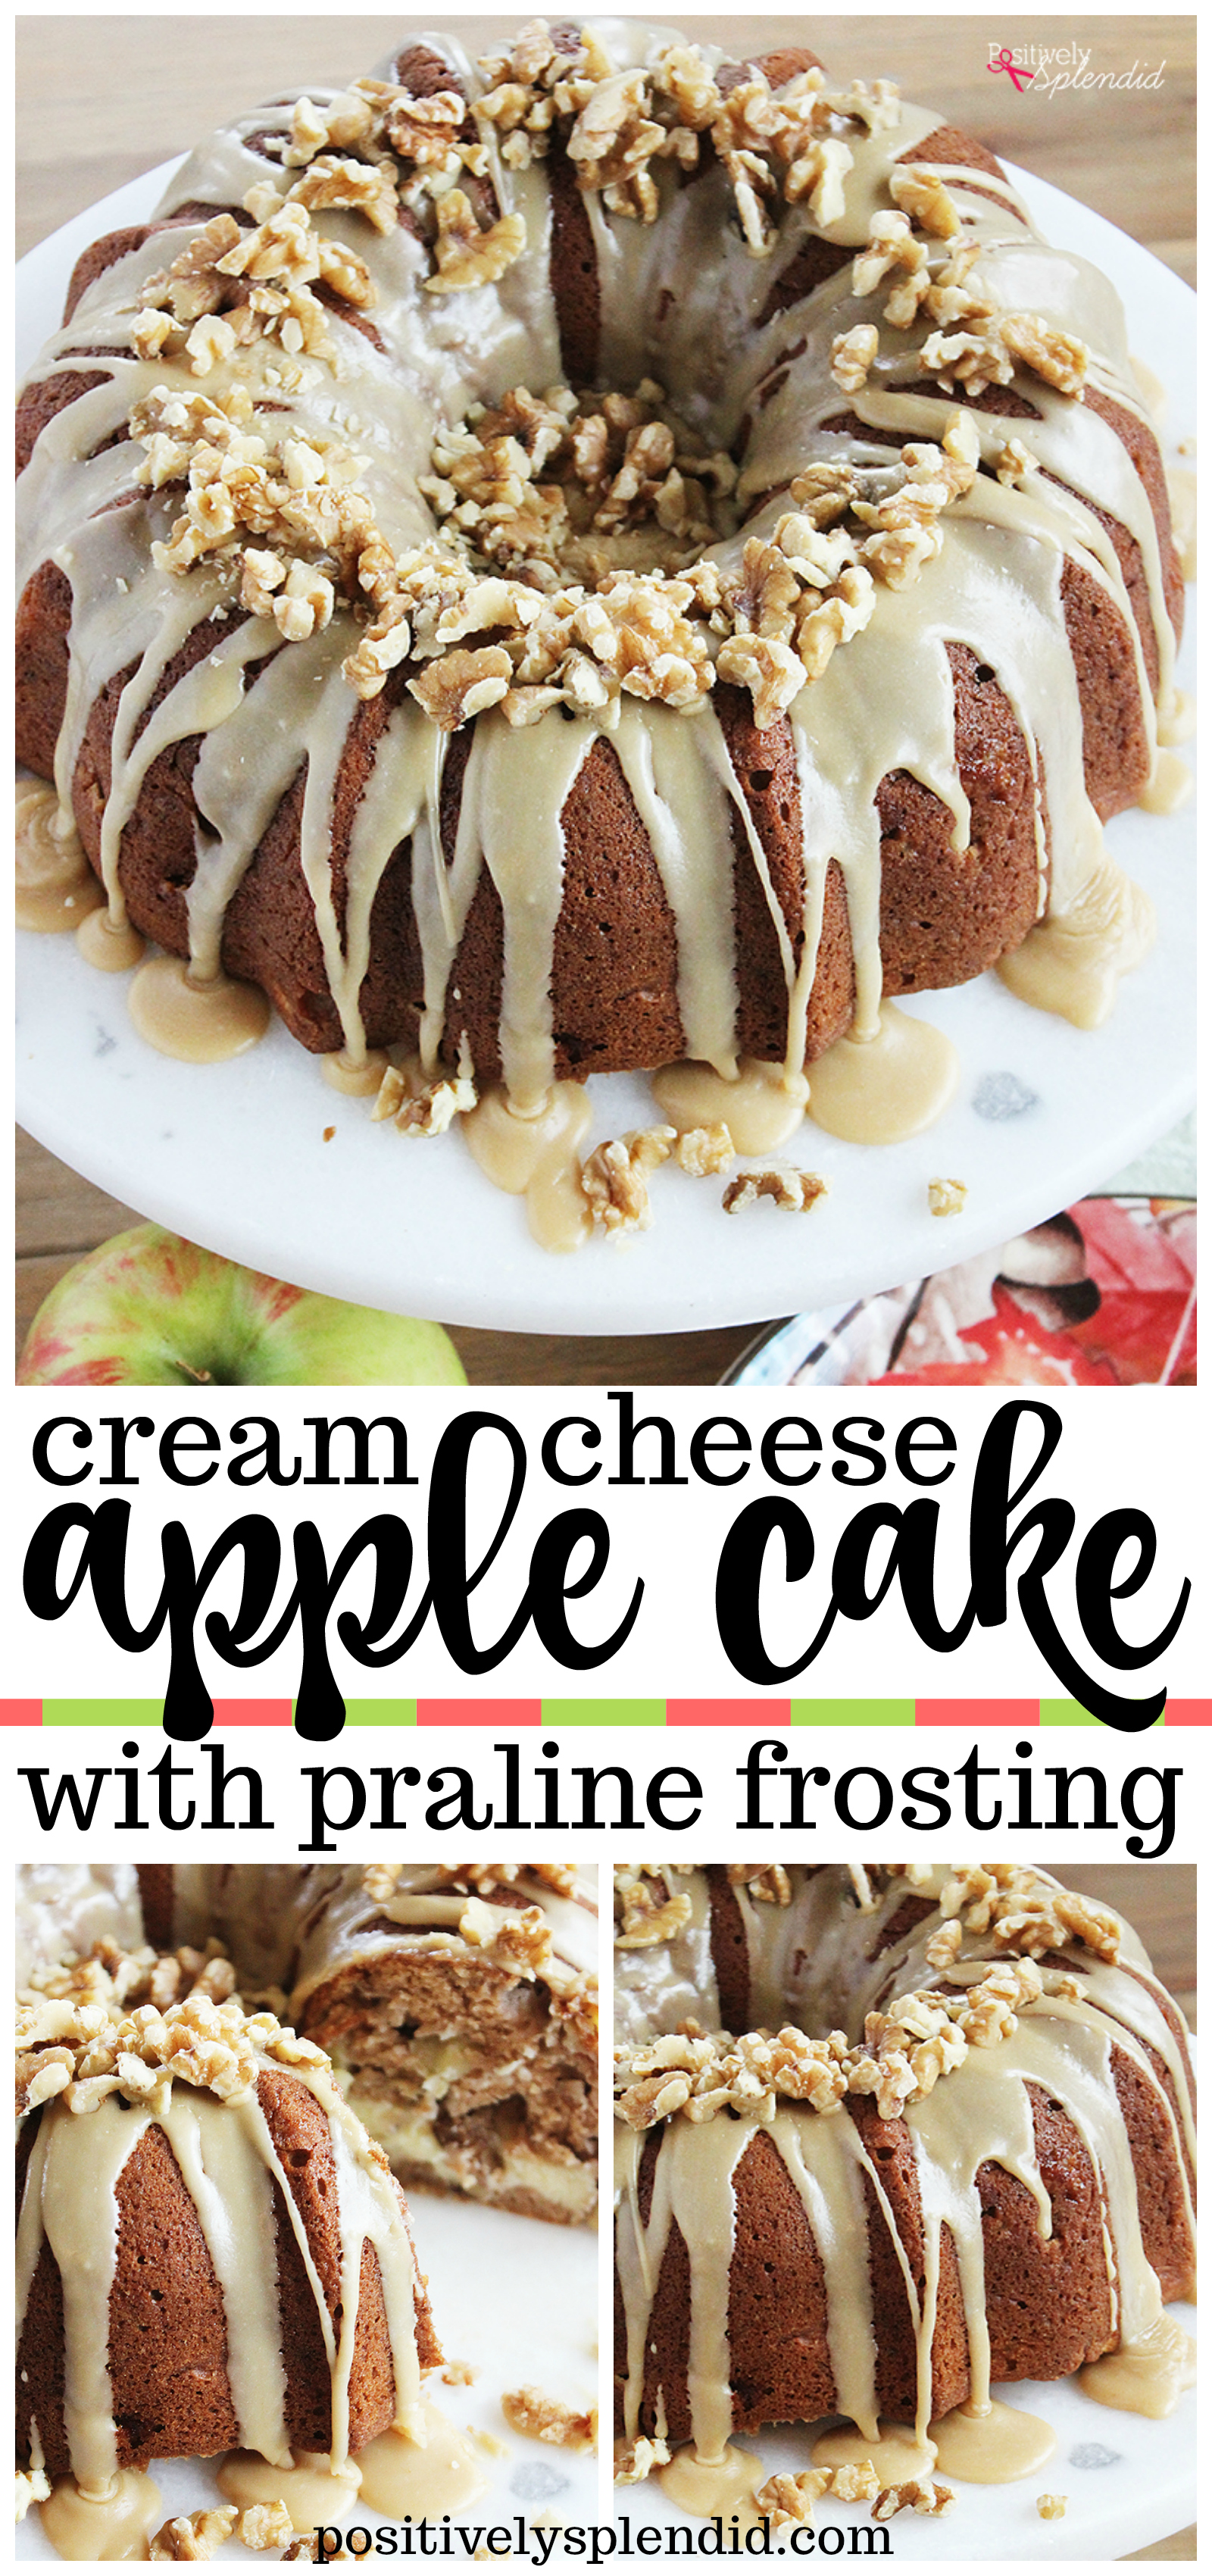 Apple Cream Cheese Cake with Praline Frosting - A delicious recipe to use fall apples!